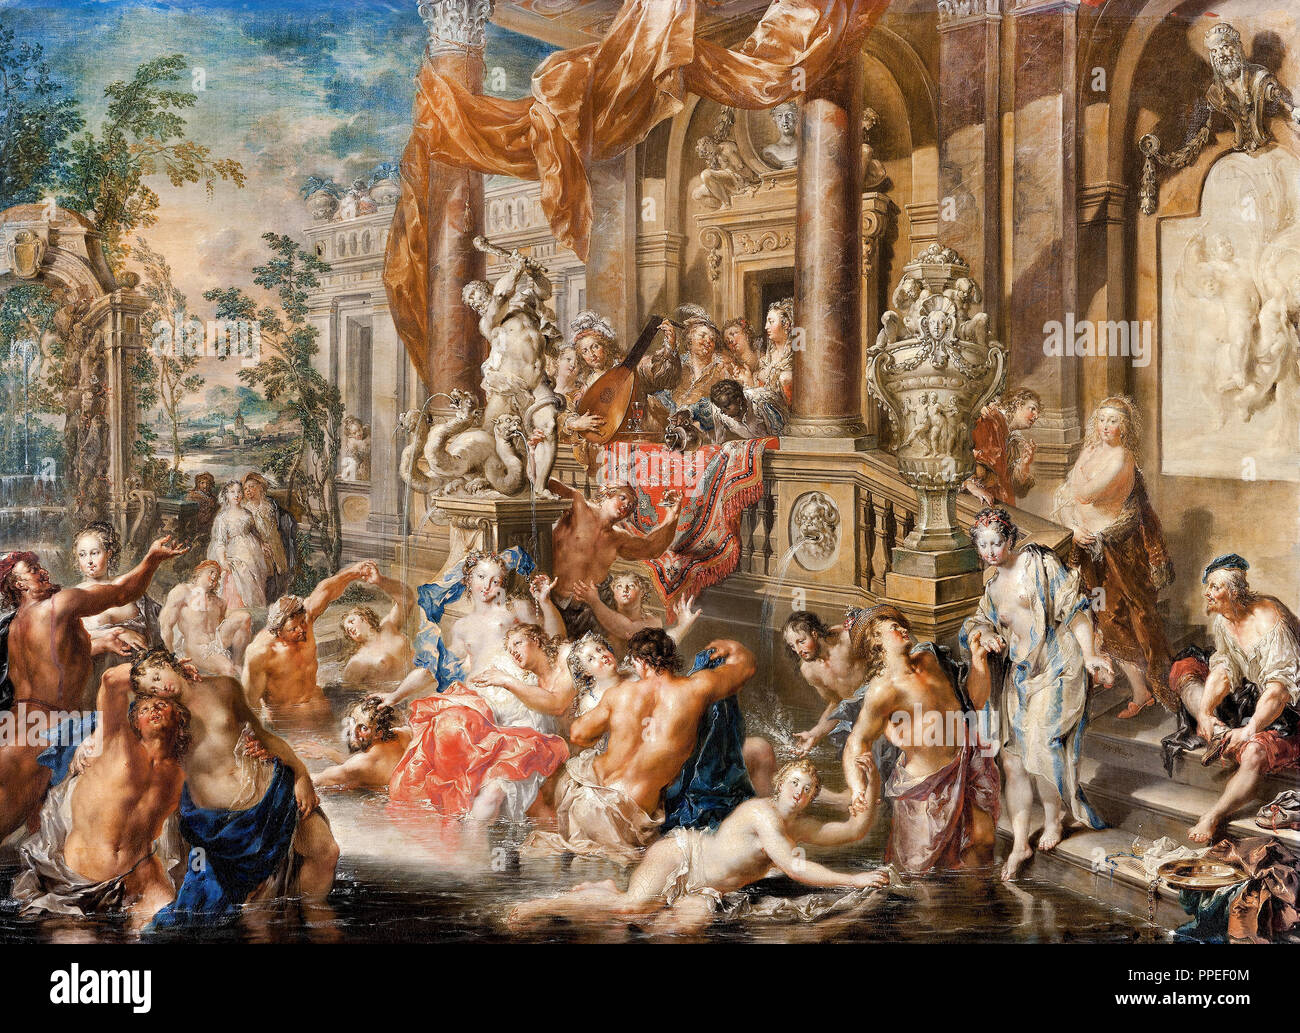 Johann Georg Platzer - Fountain Scene in Front of a Palace. Circa 1730 - 1735. Oil on copper. Skokloster Castle, Habo, Sweden. - Stock Image